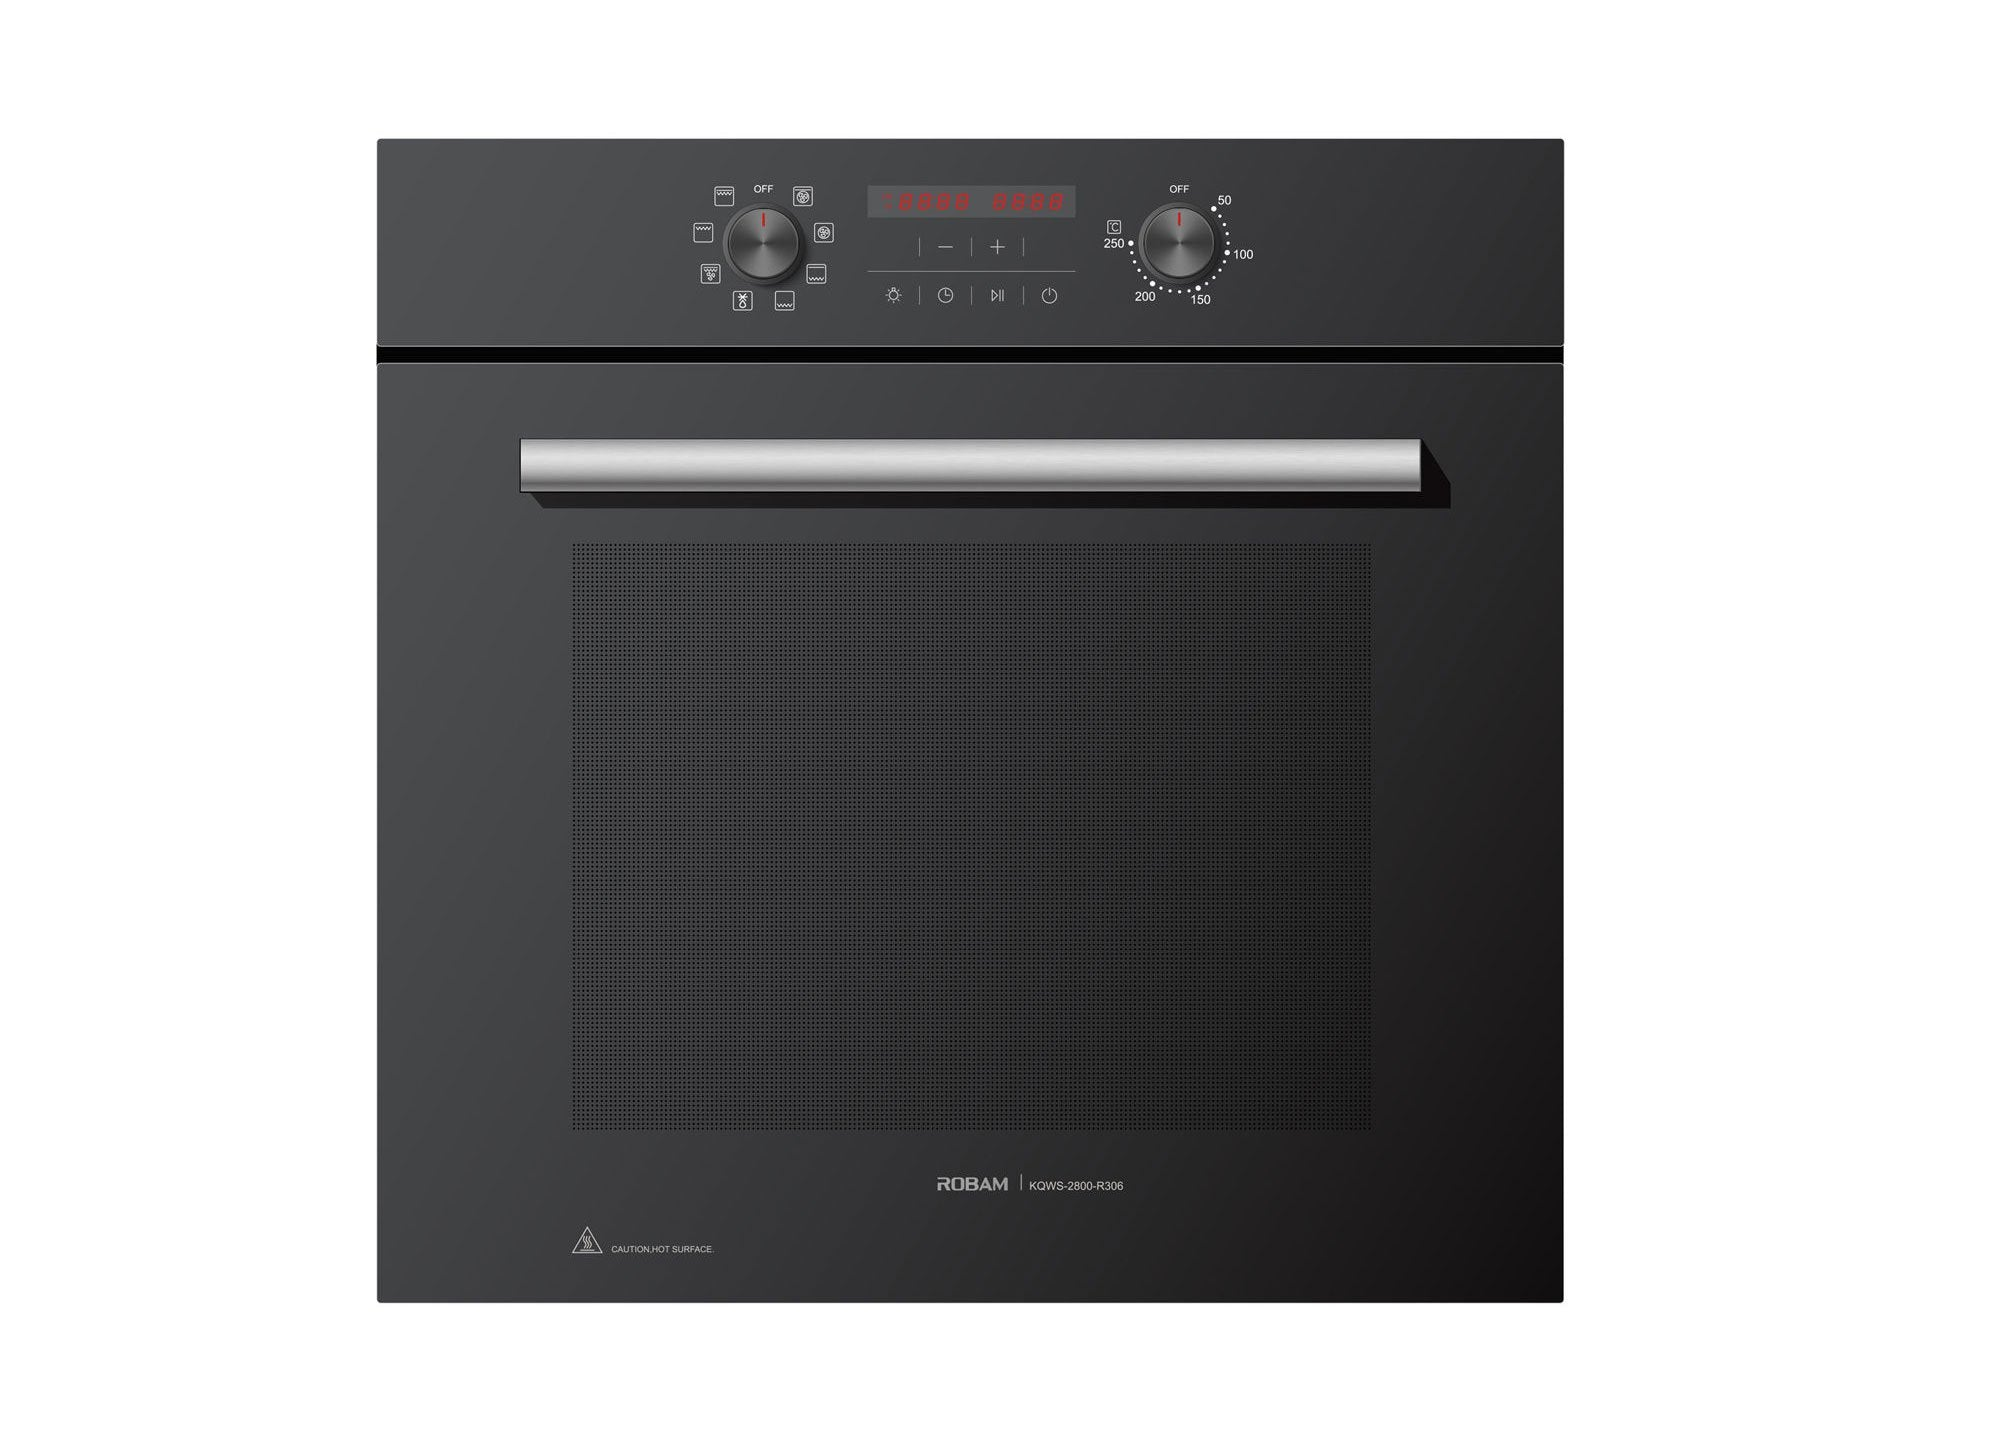 Robam Oven KQWS-2800-R306 - Latest Living